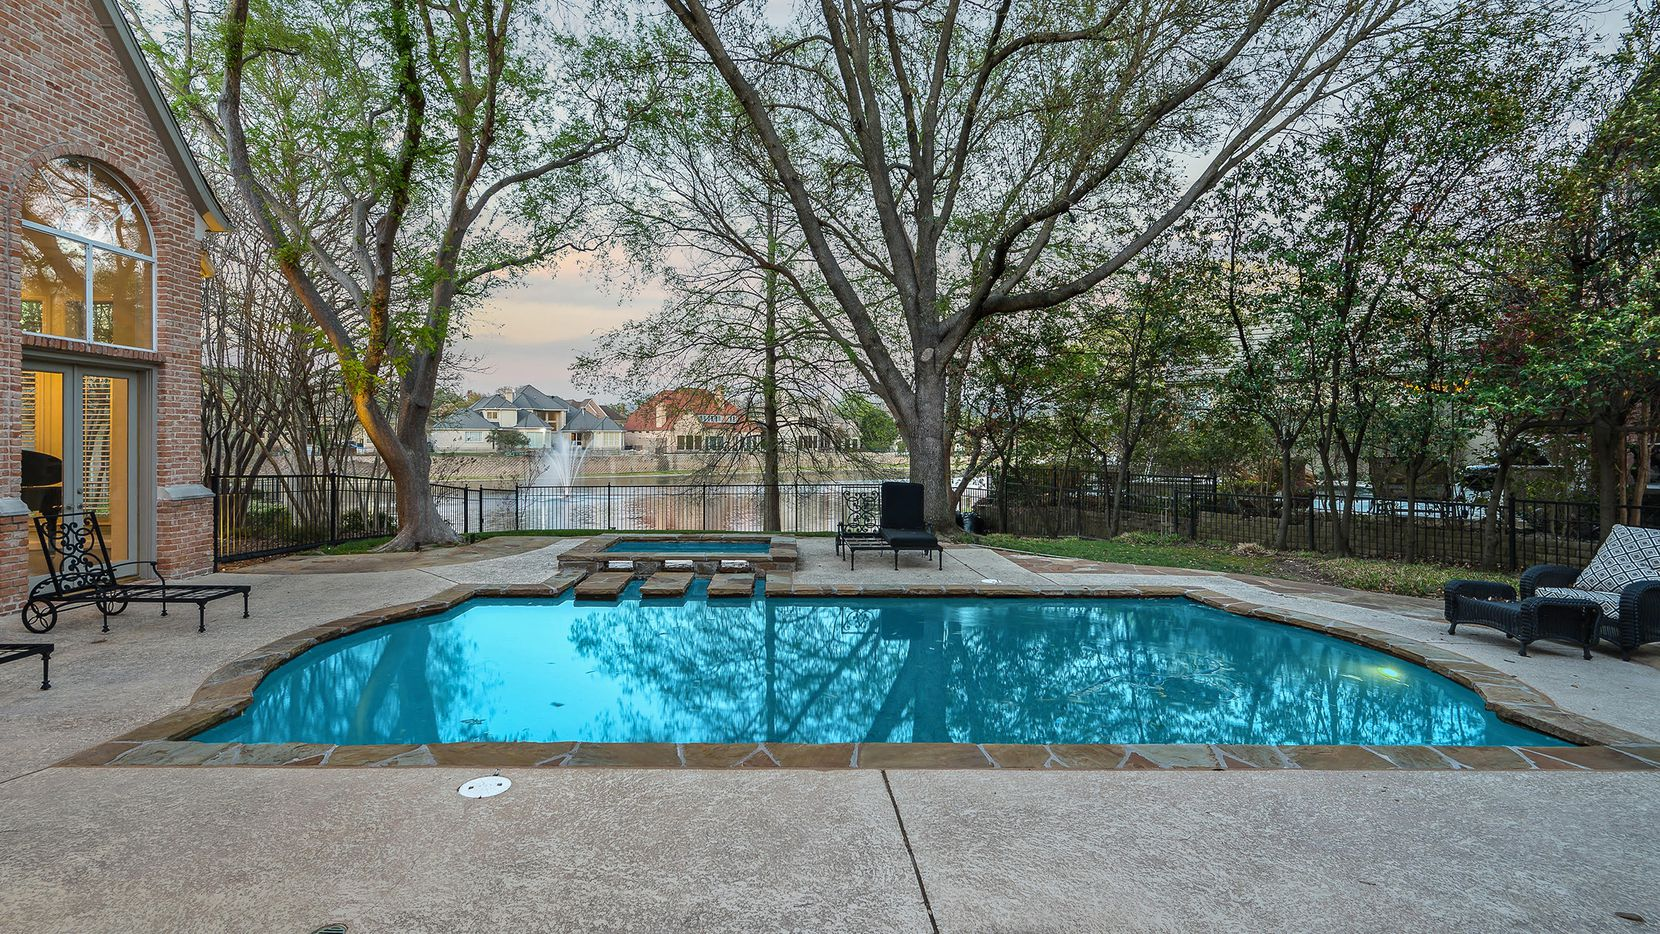 The estate at 4728 Stonehearth Place, which includes a pool and fountain, is located in guard-gated Oakdale, which has a lake and walking trails.